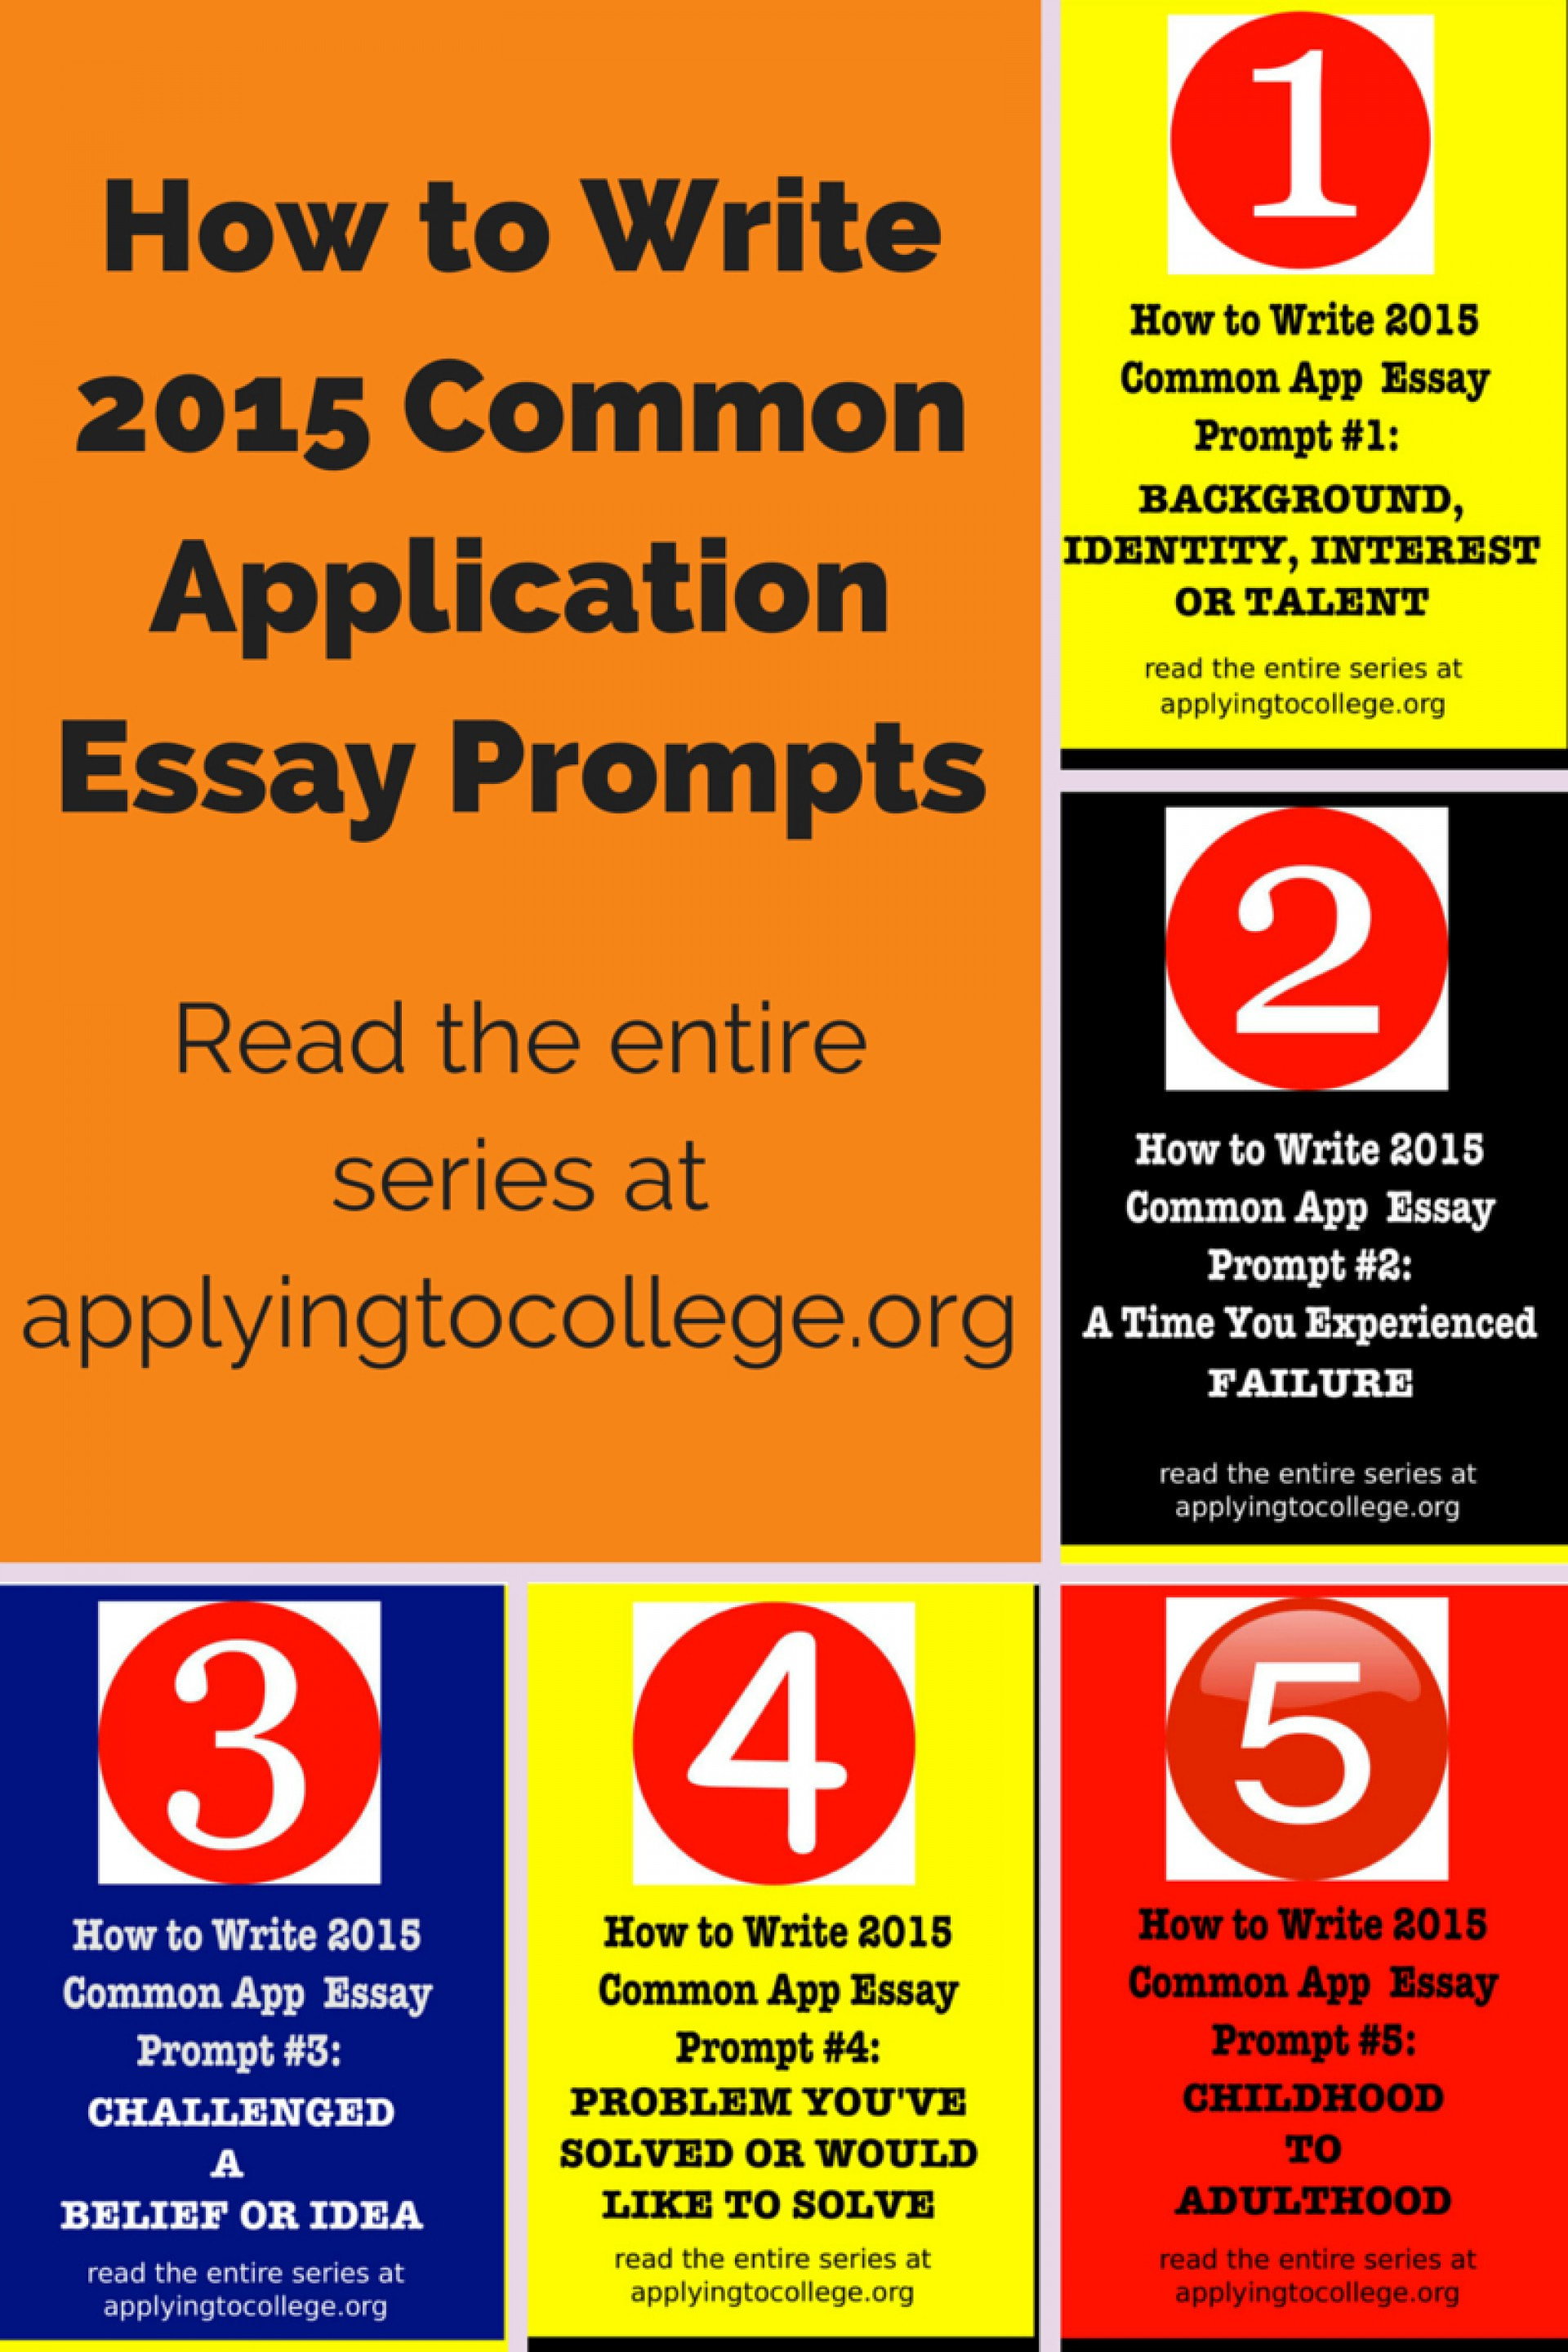 011 Essay Example Common App Prompt How To Write Application Prompts Unusual Examples 6 1 Sample 1920